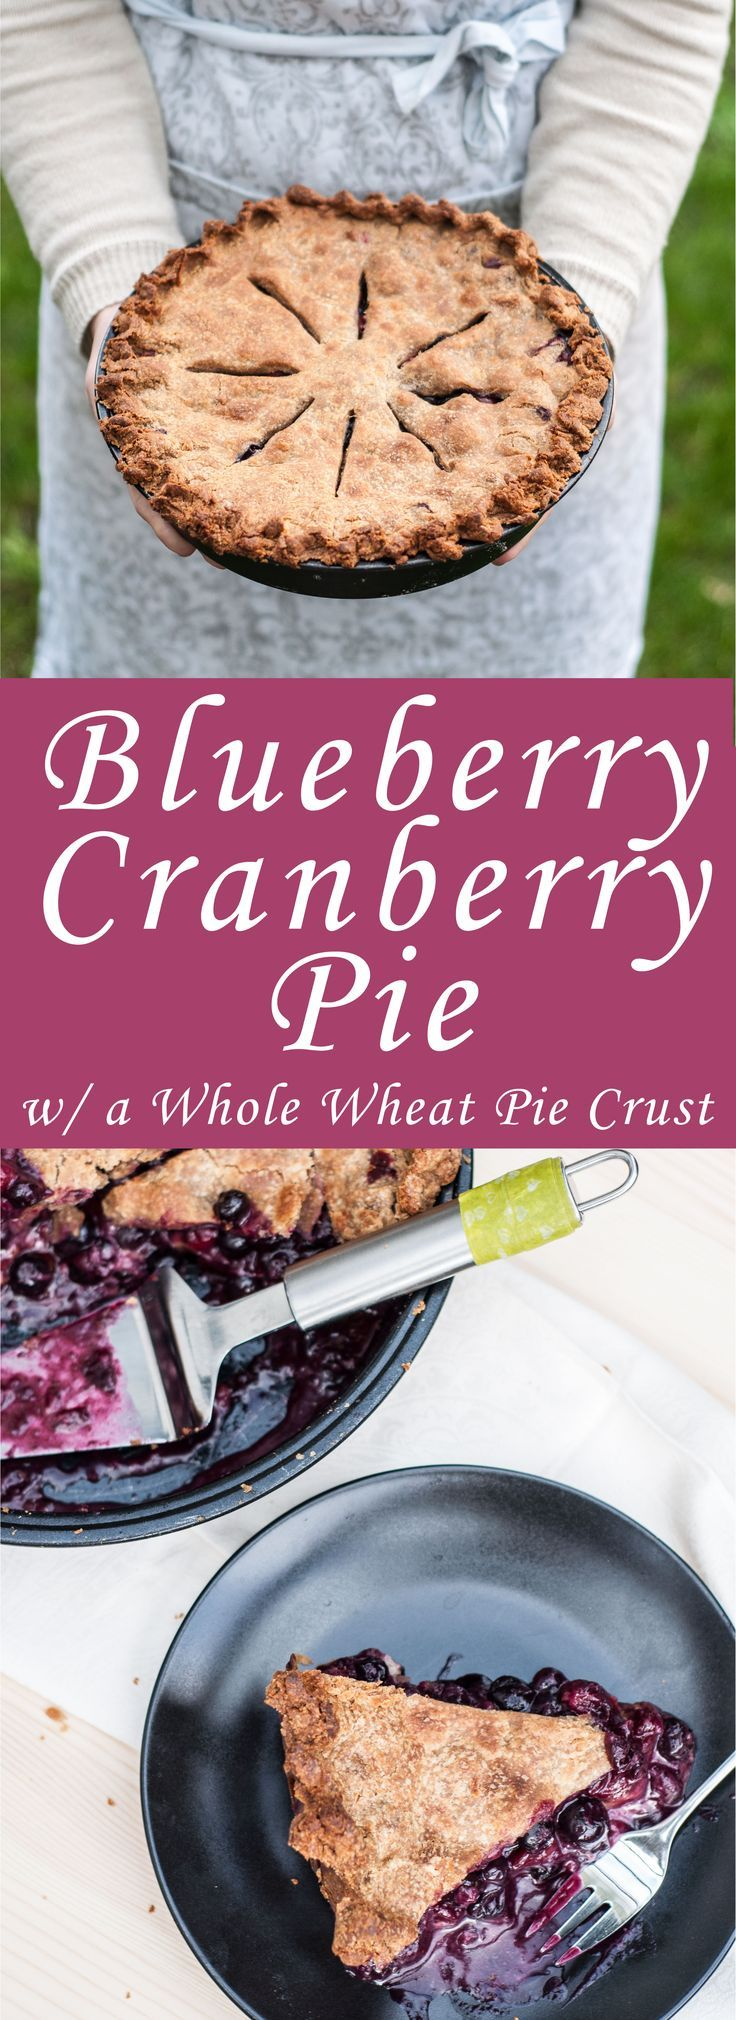 Blueberry Cranberry Pie - Vegan Family Recipes Juicy Blueberry Cranberry Pie Recipe with a healthie